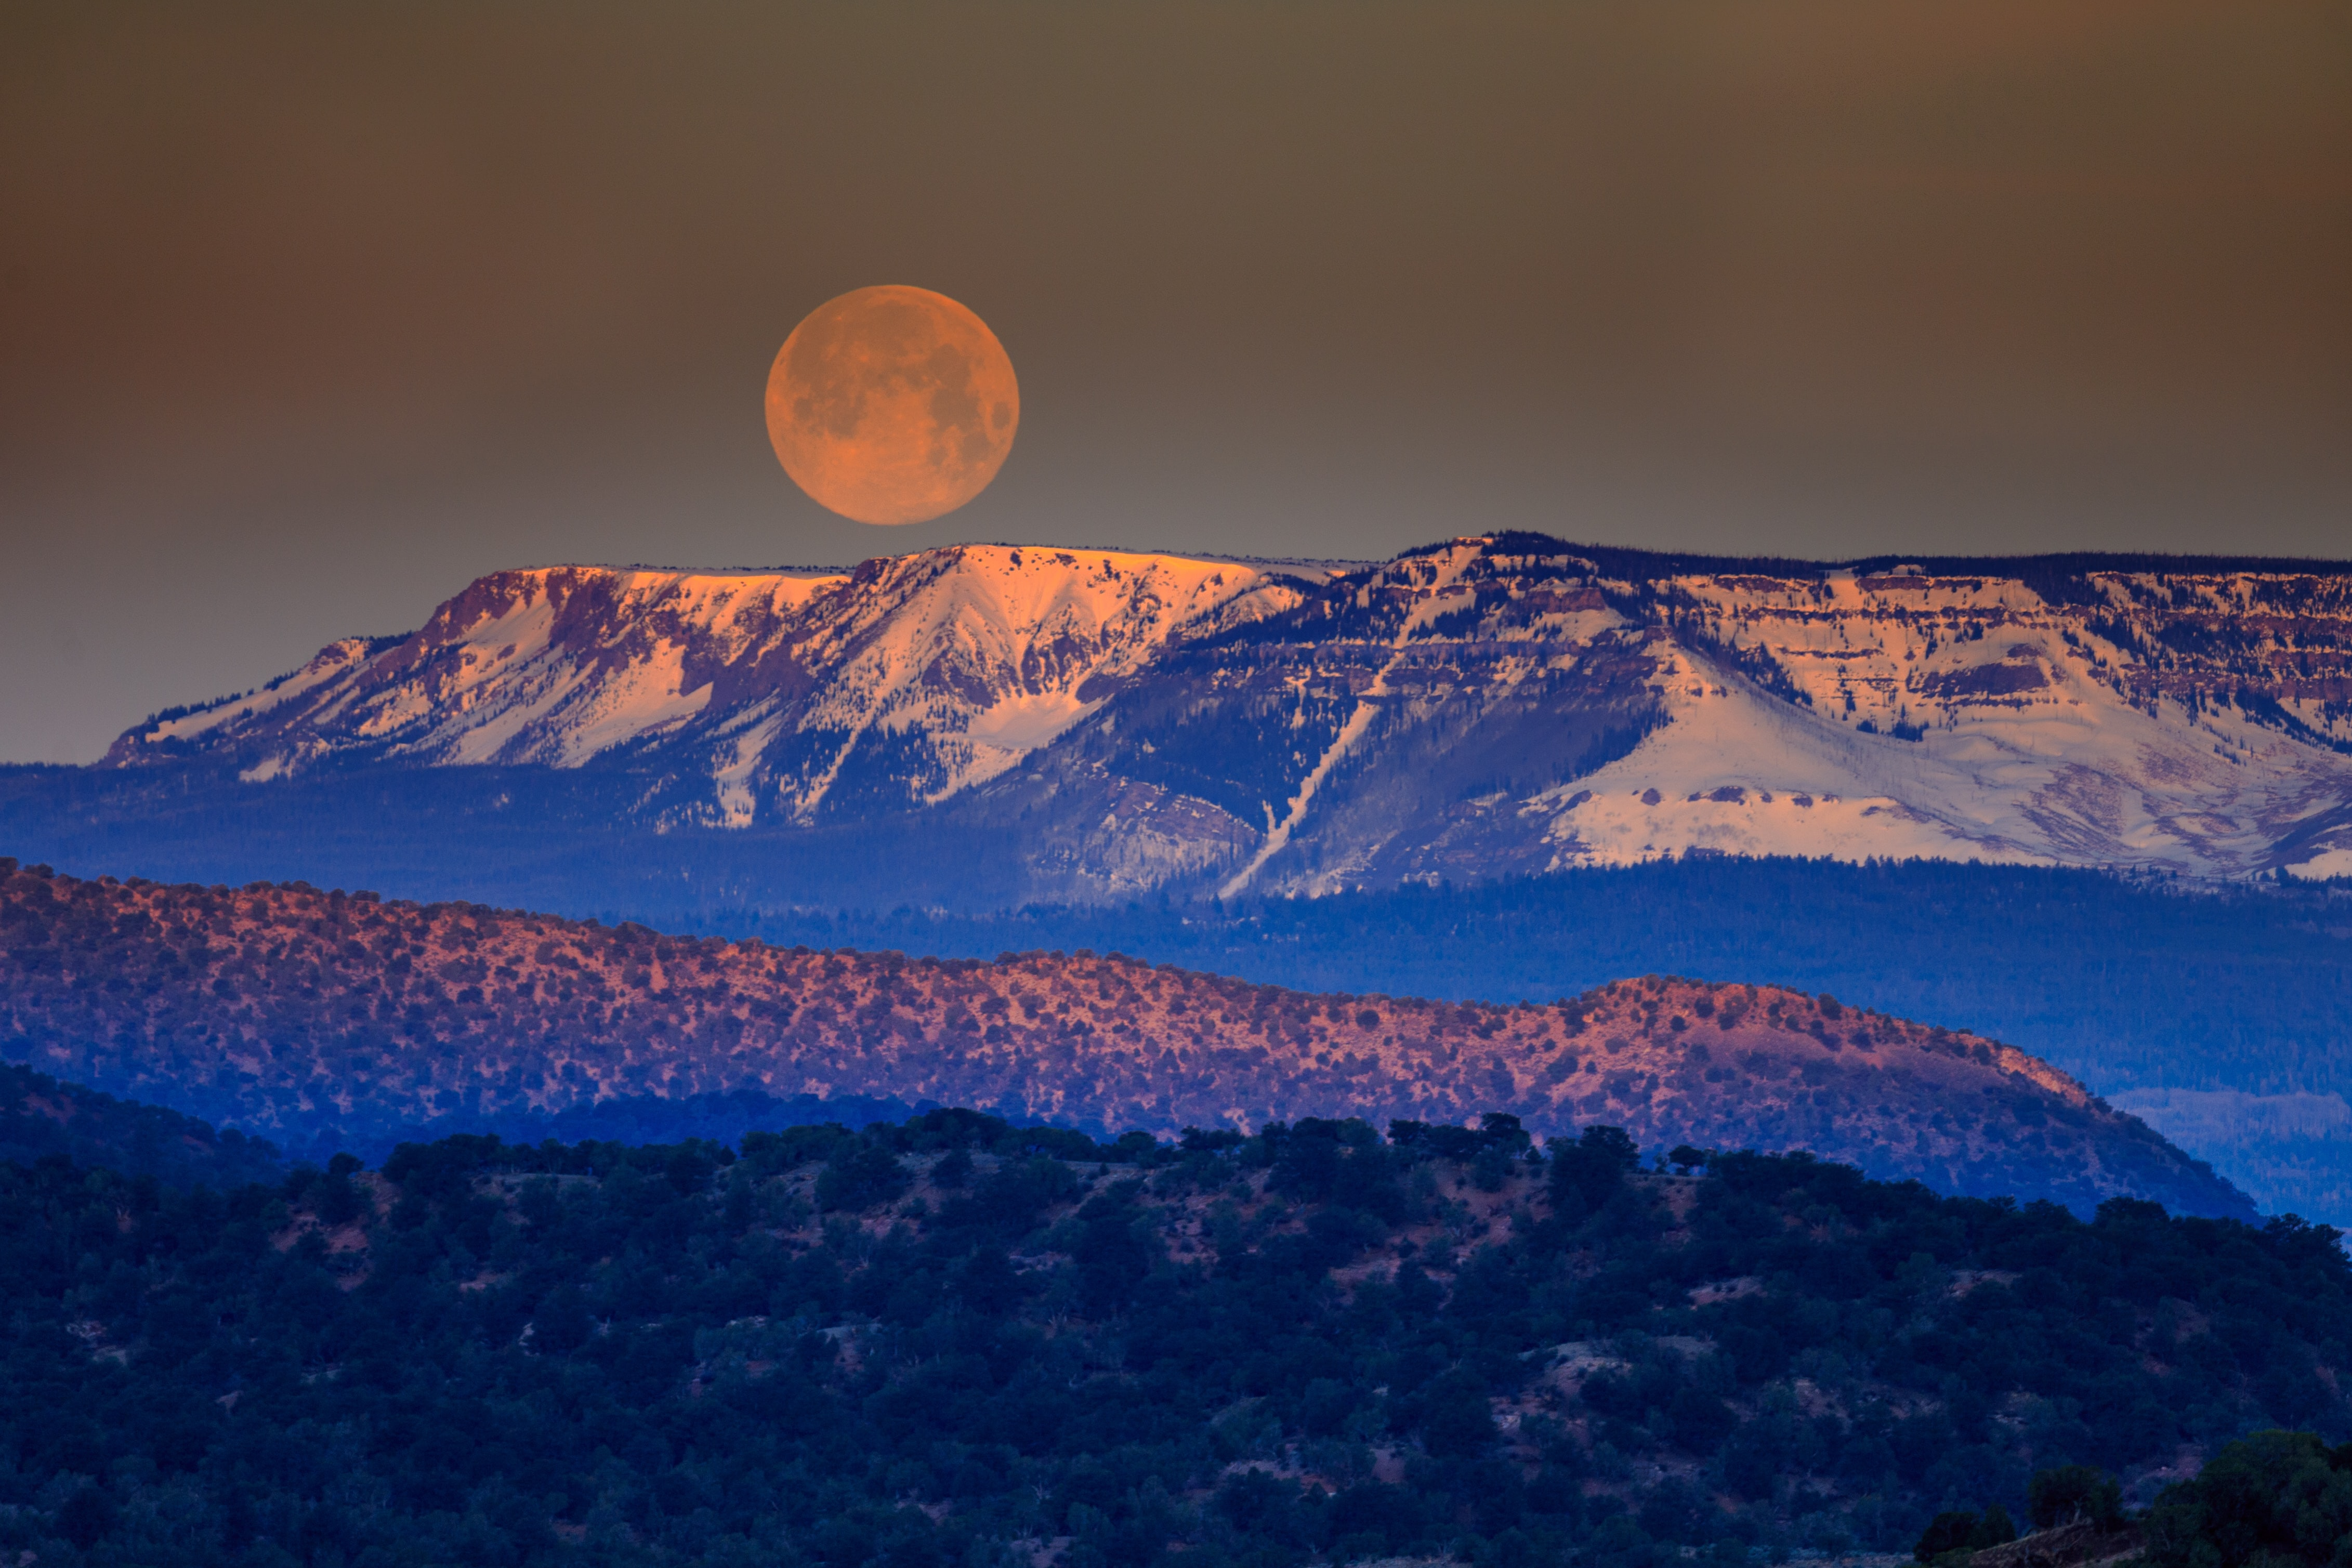 A large full moon over table-top mountains at dusk